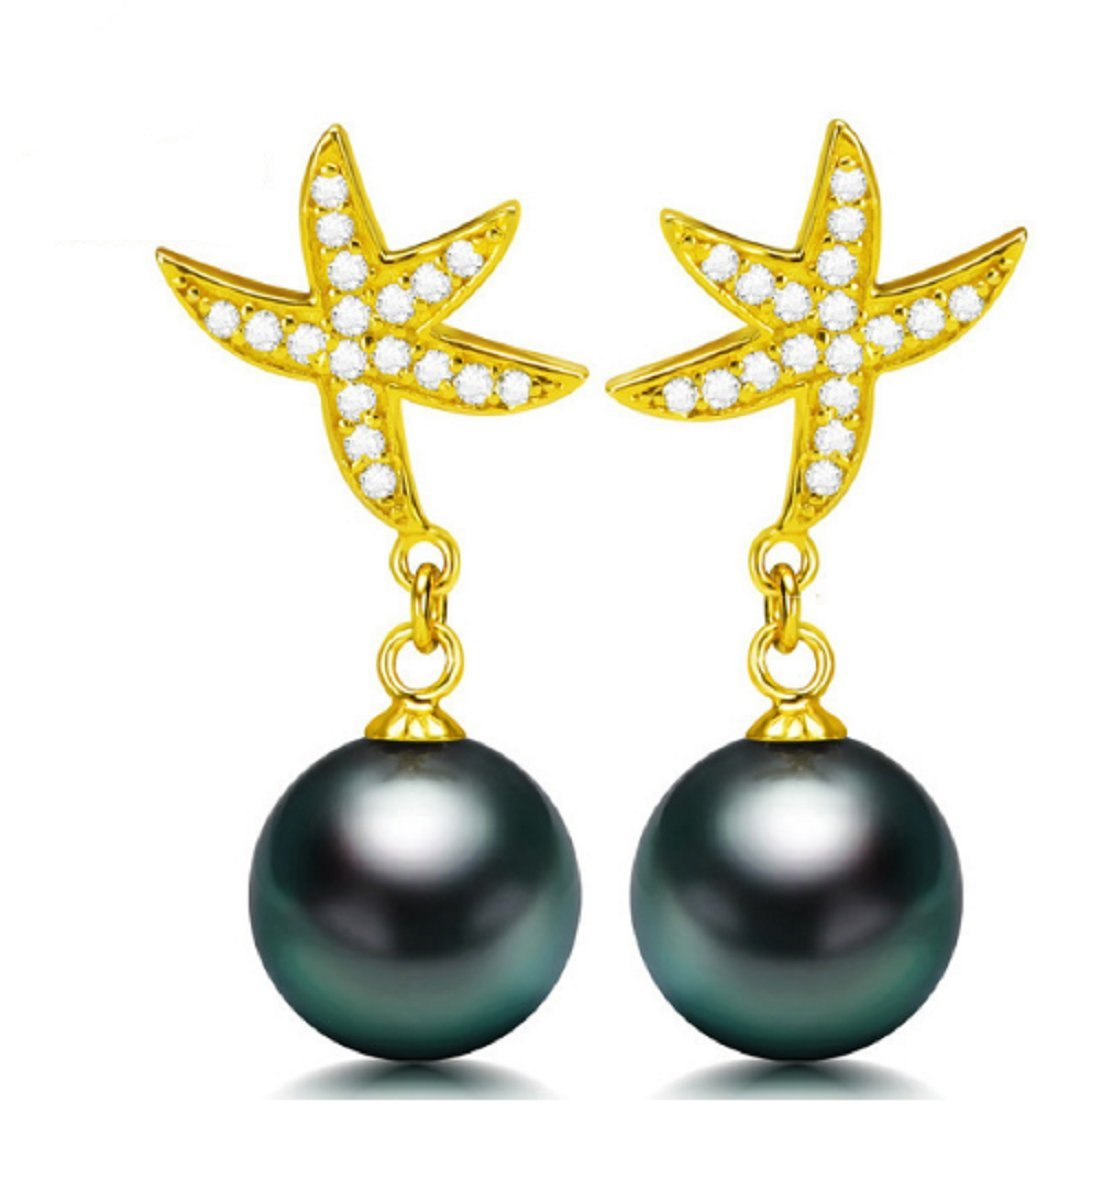 GOWE Glass Design Drop Earring 10-11mm Natural Tahitian Pearl Drop Earrings by GOWE